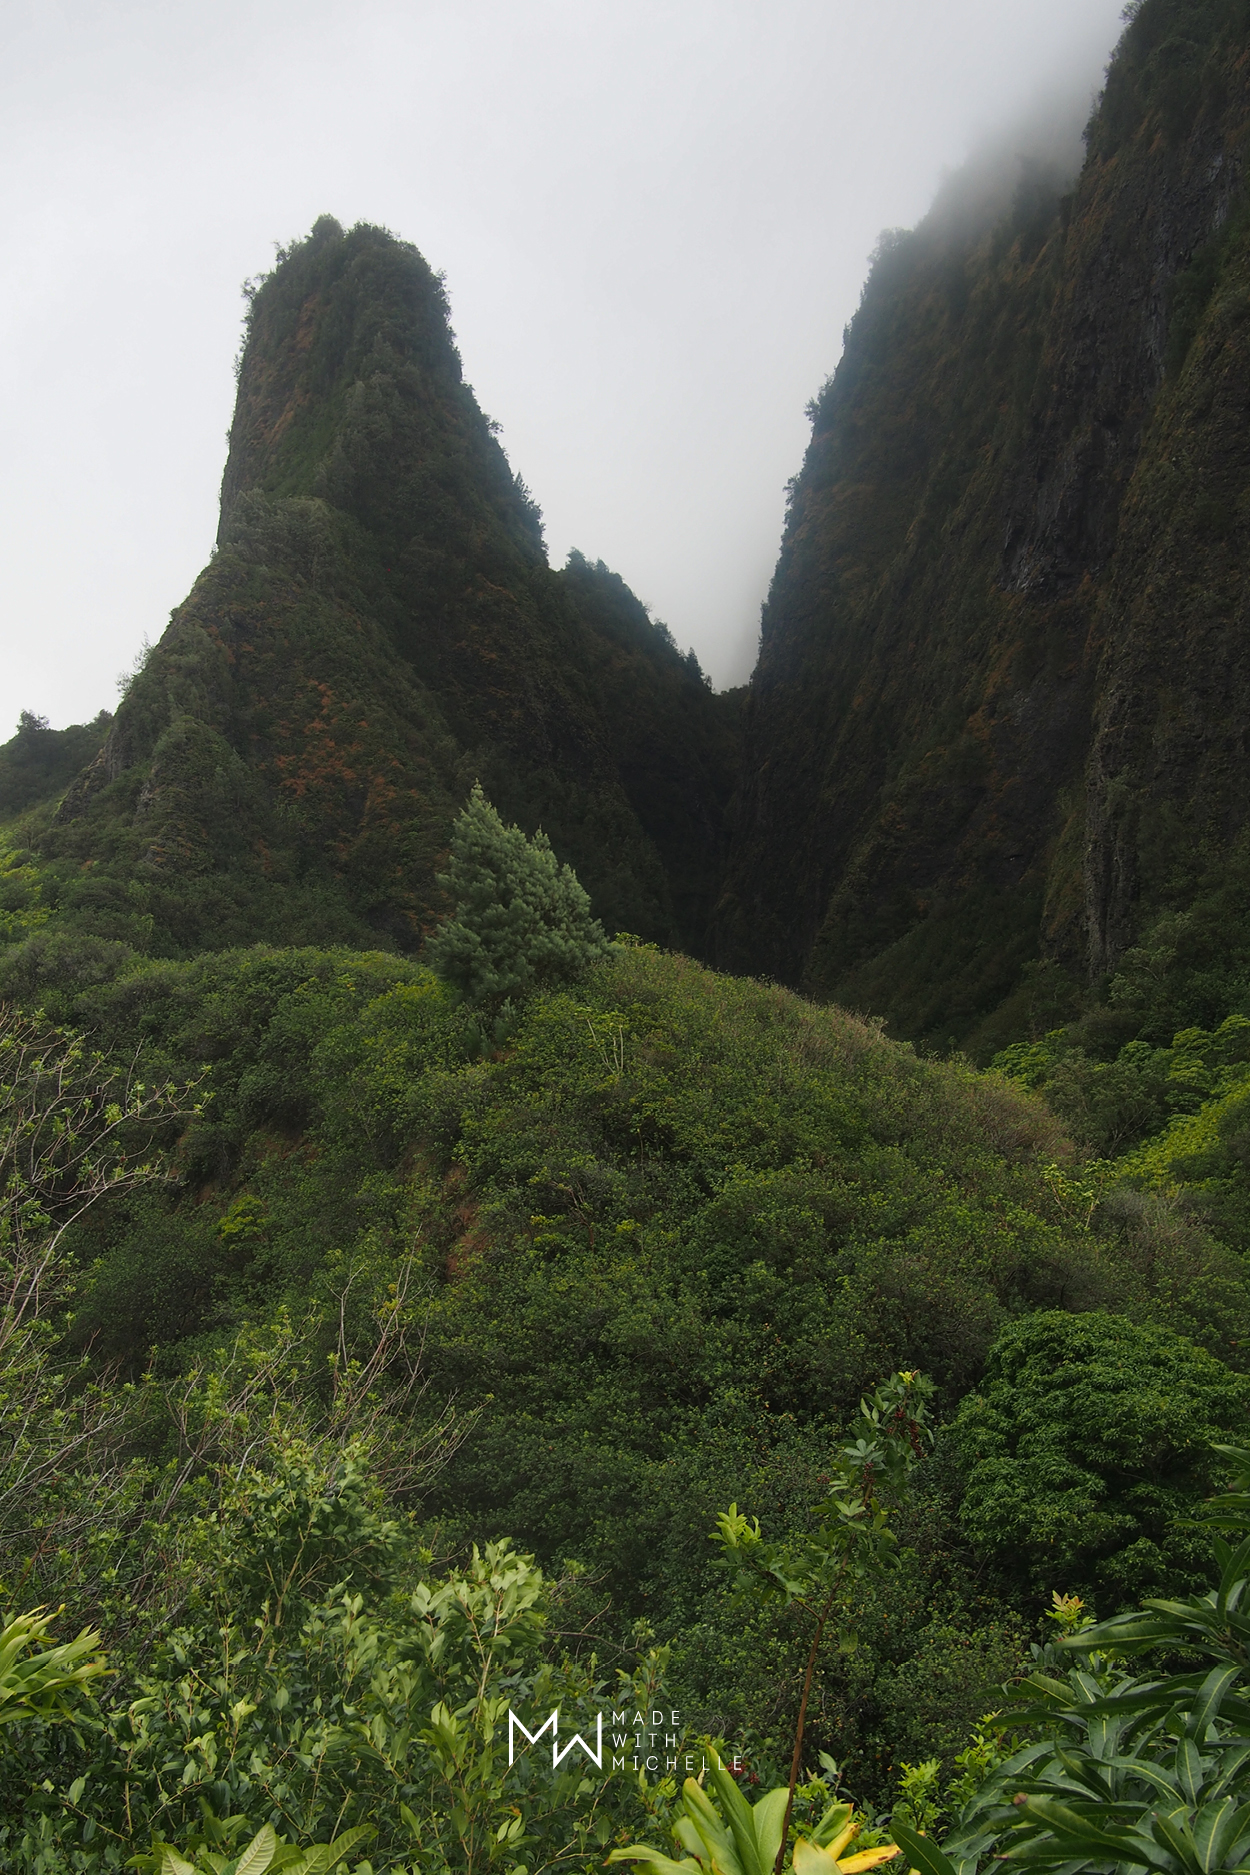 Things to do in Maui: Iao Valley State Park